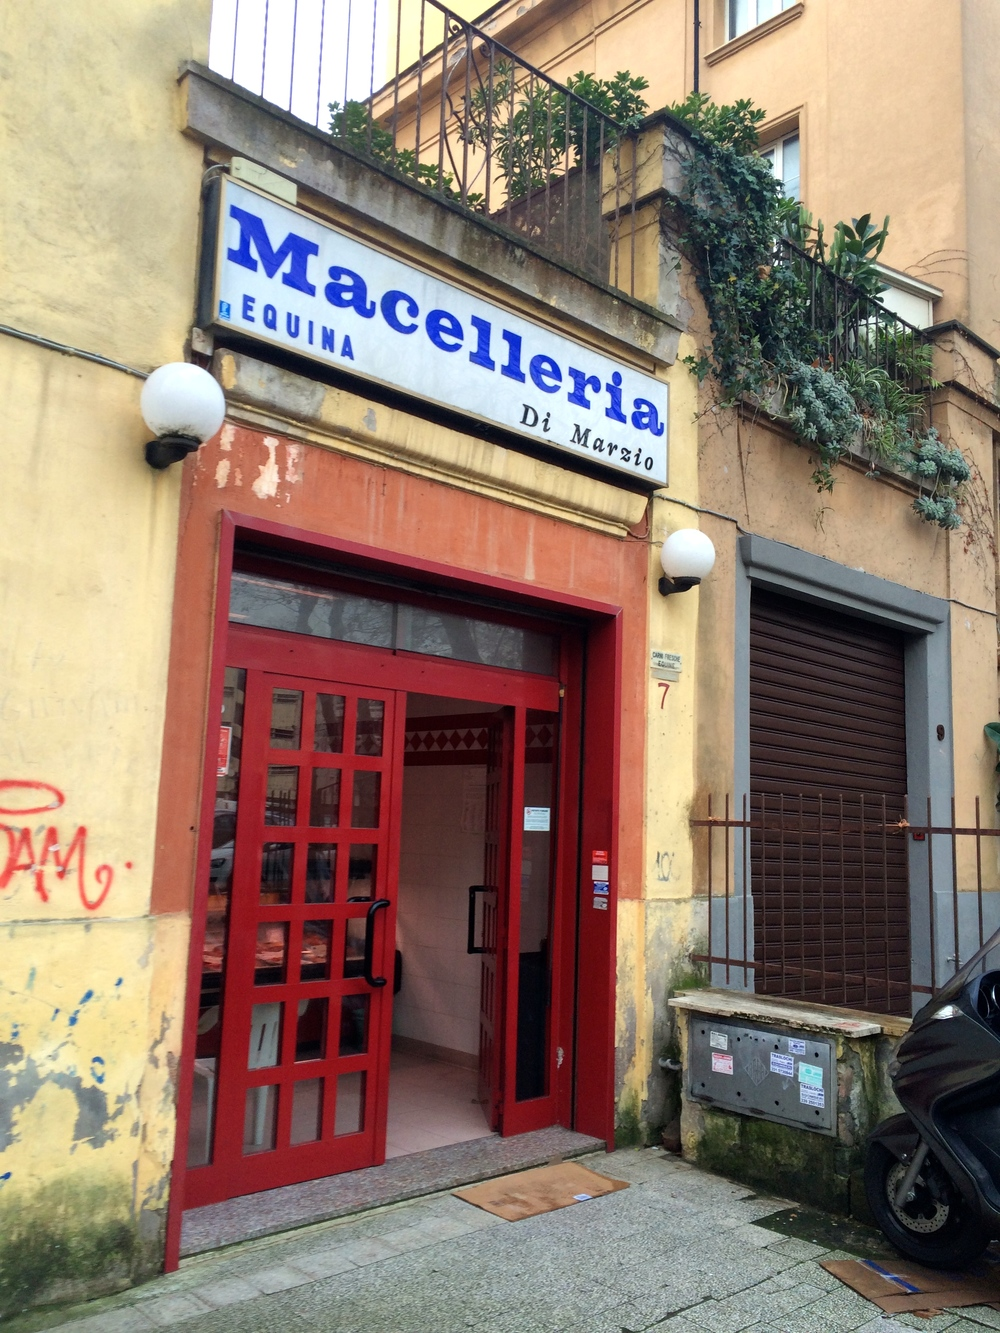 A photograph of the front entrance to a horse butchery in Rome